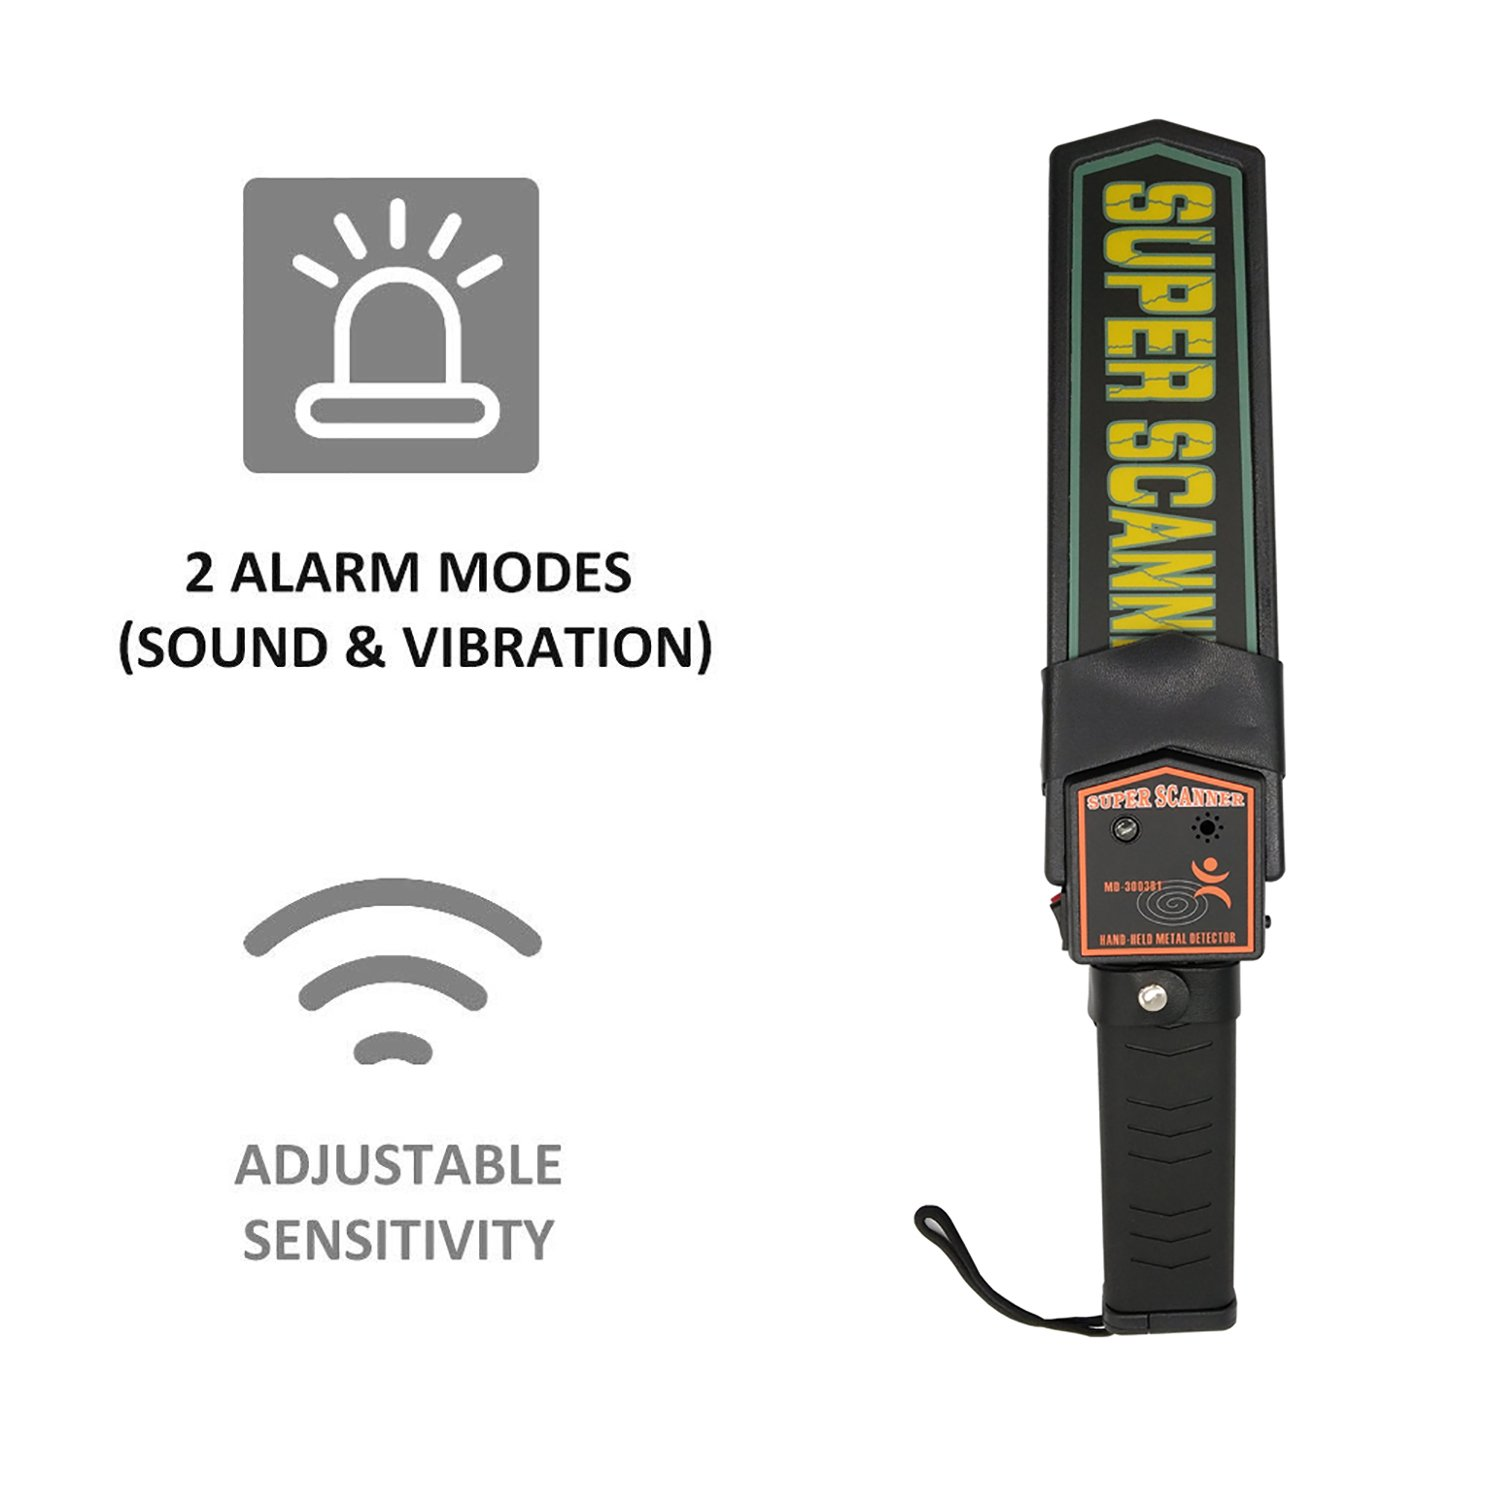 Amazon.com : KAMURES Handheld Metal Detector Security Scanner Wand with 9V Battery and Belt Holster, Adjustable Sensitivity, Sound & Vibration Modes for ...